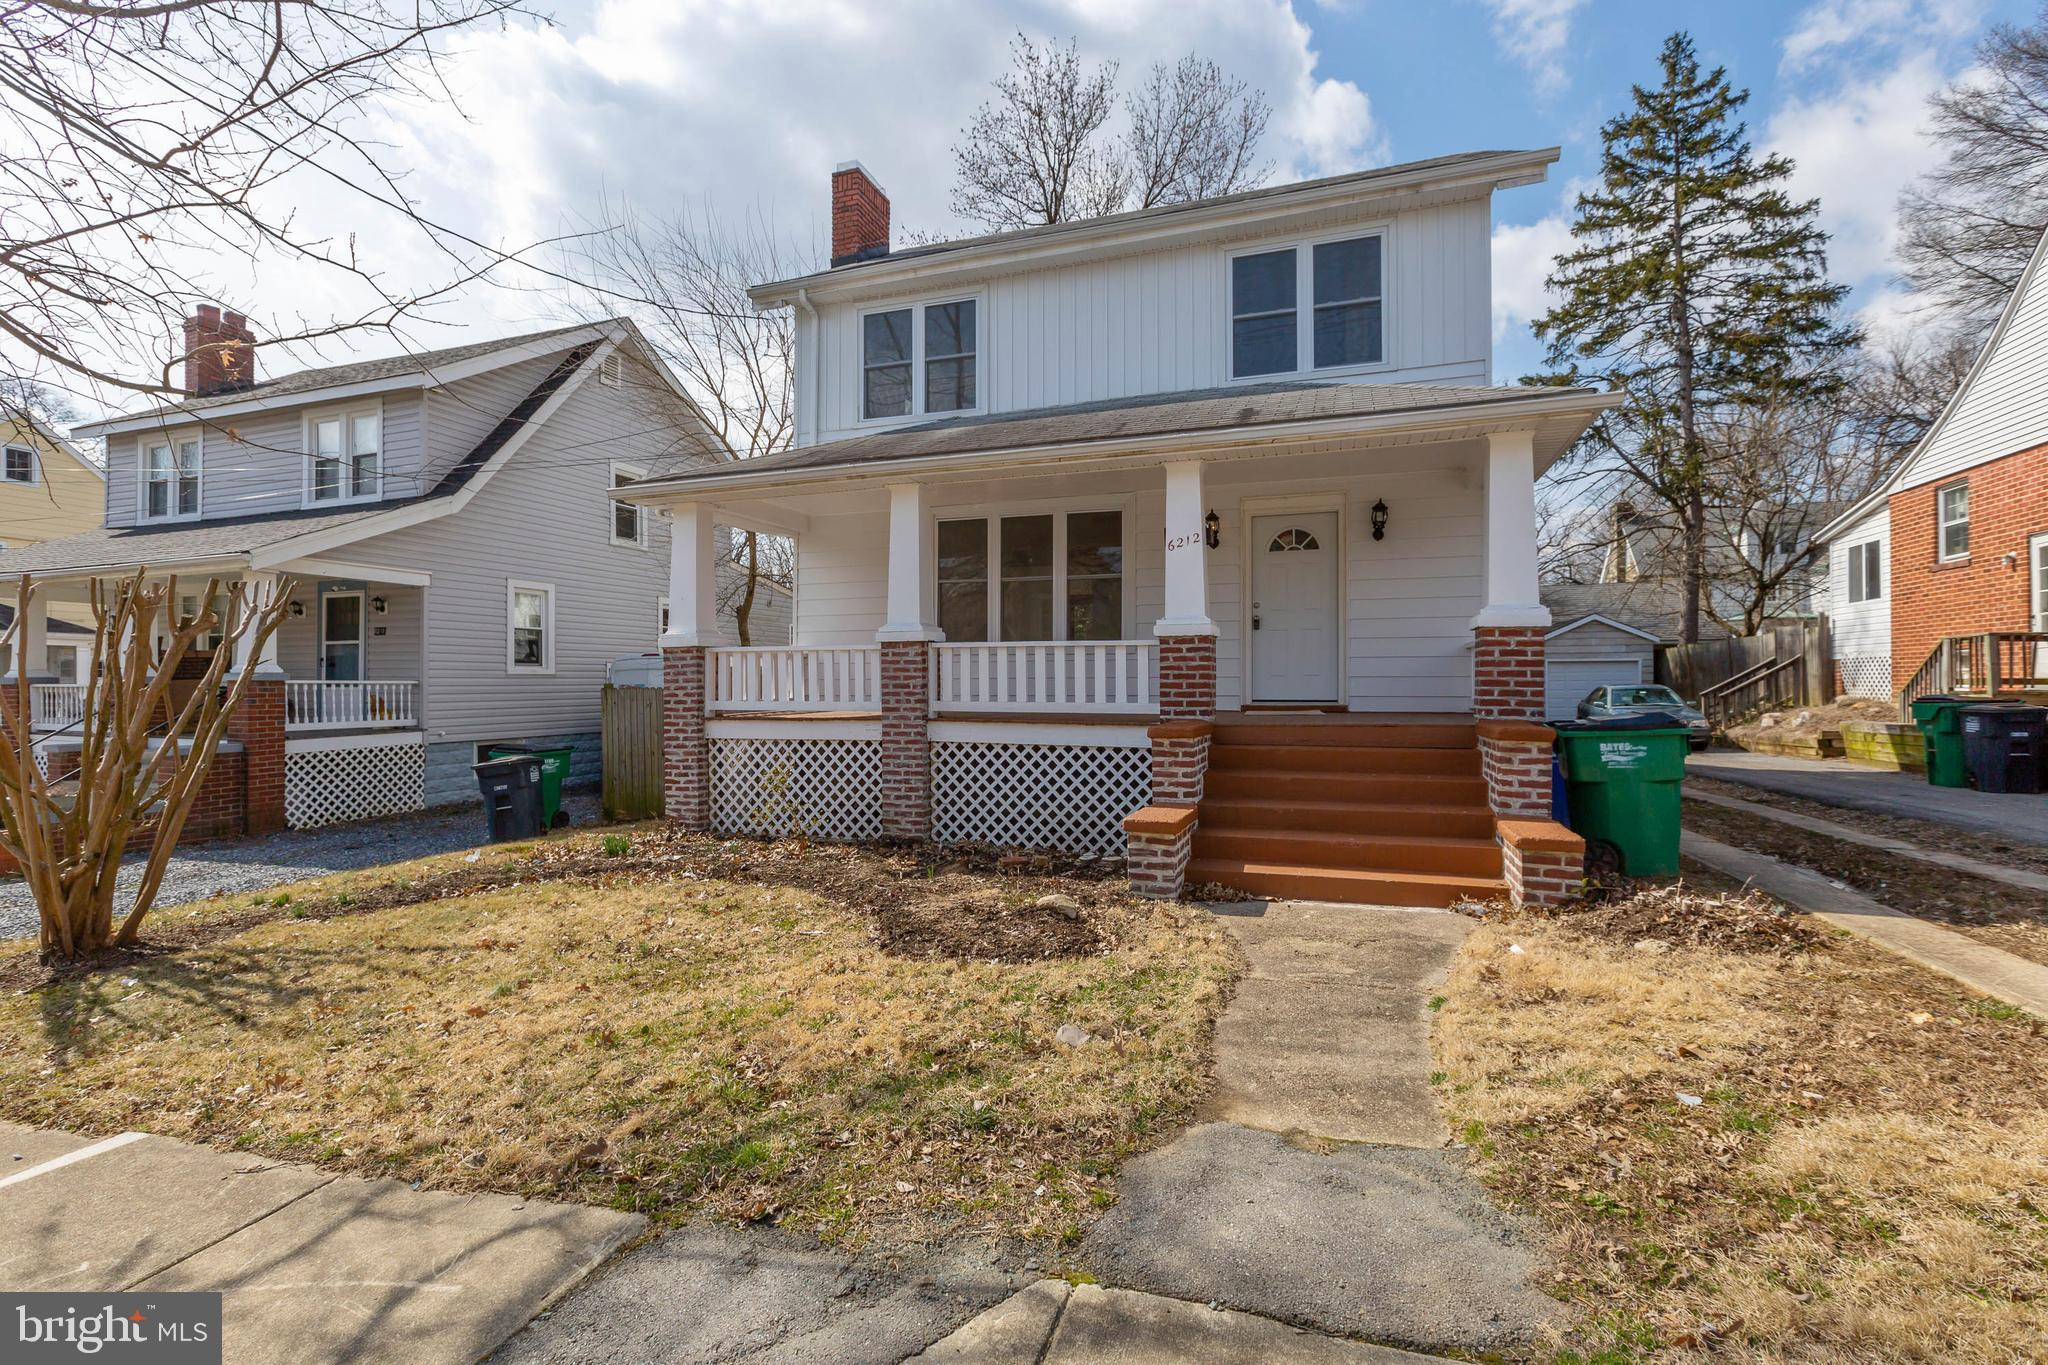 6212 44TH AVENUE, RIVERDALE, MD 20737